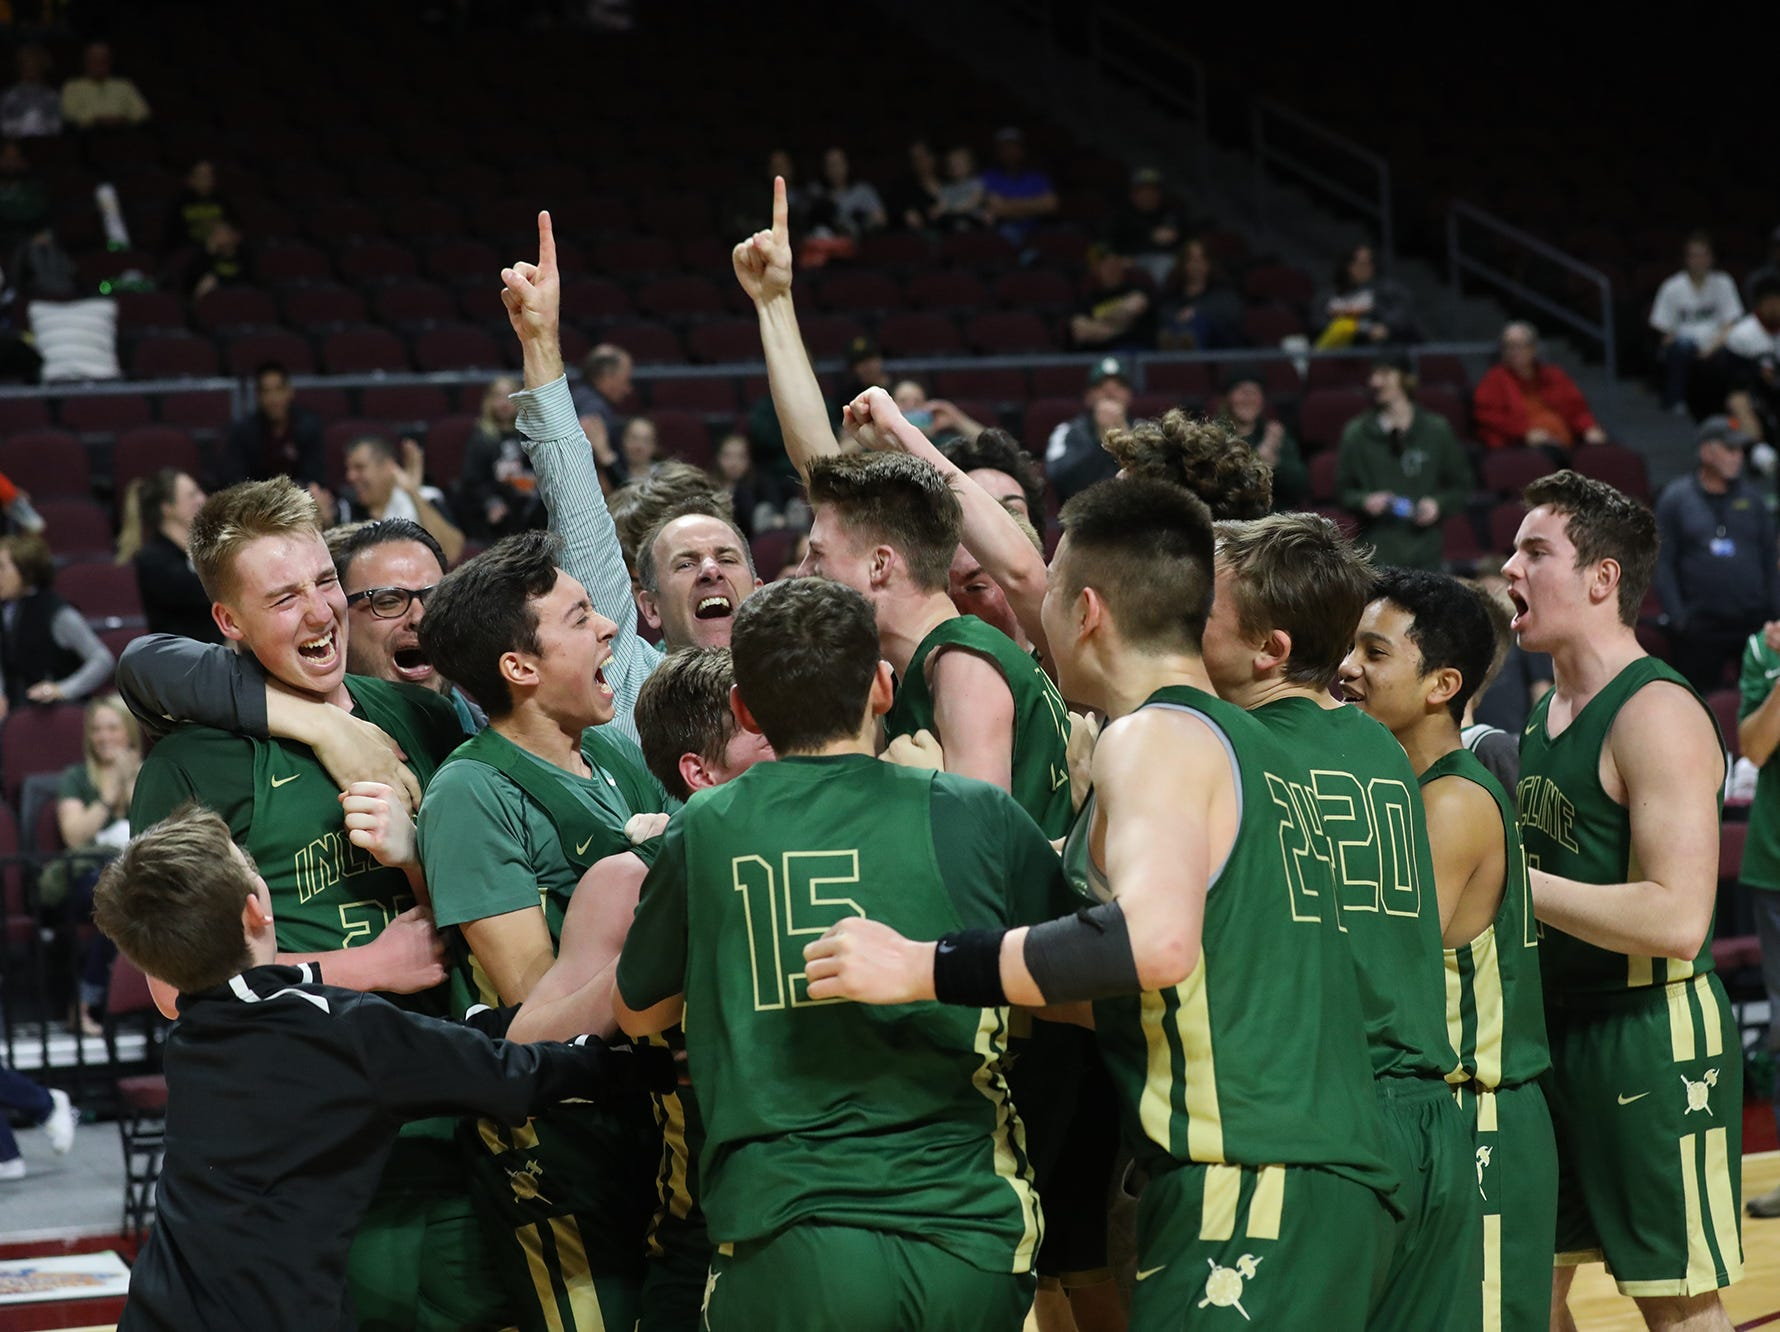 The Incline boys won the 2A state basketball title on Saturday.